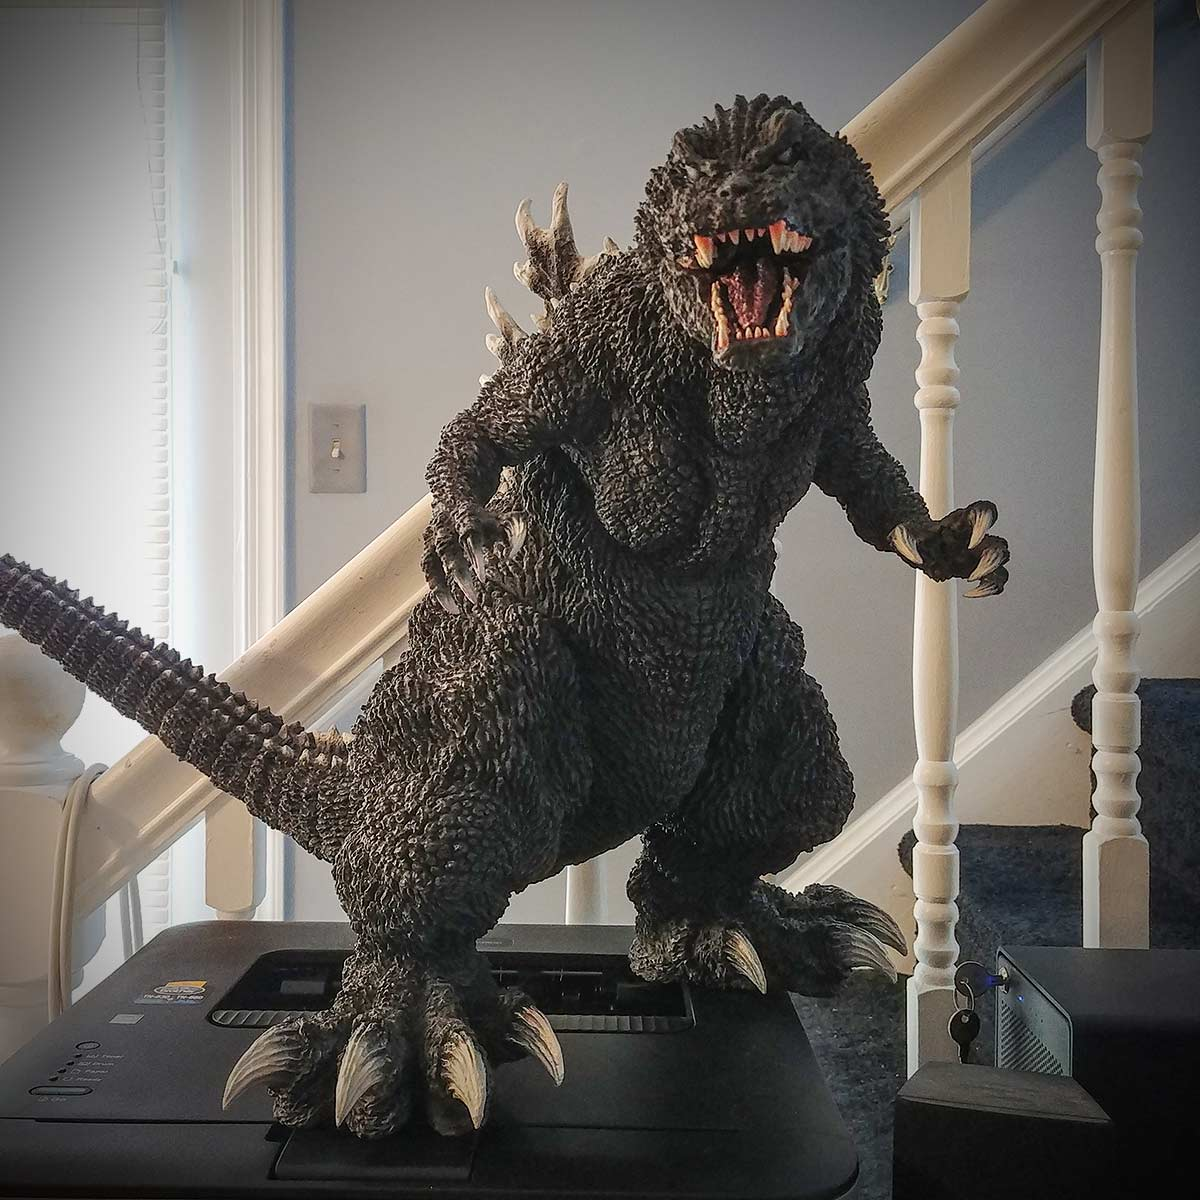 The X-Plus Gigantic Series Godzilla 2001 vinyl figure on my desk.